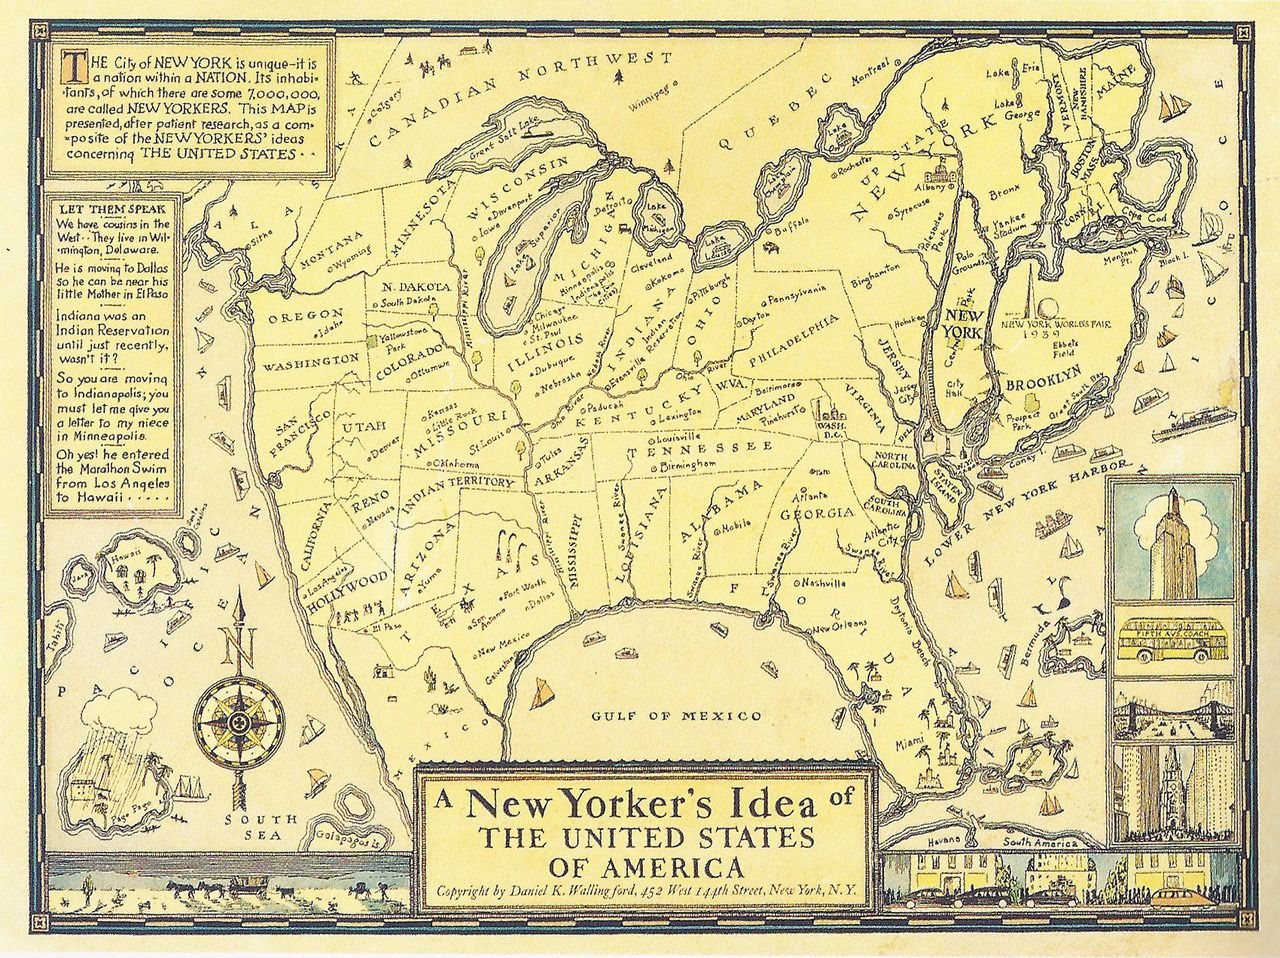 Us Map According To New Yorkers.Map Of Us According To New Yorkers Cartography Map Us Map